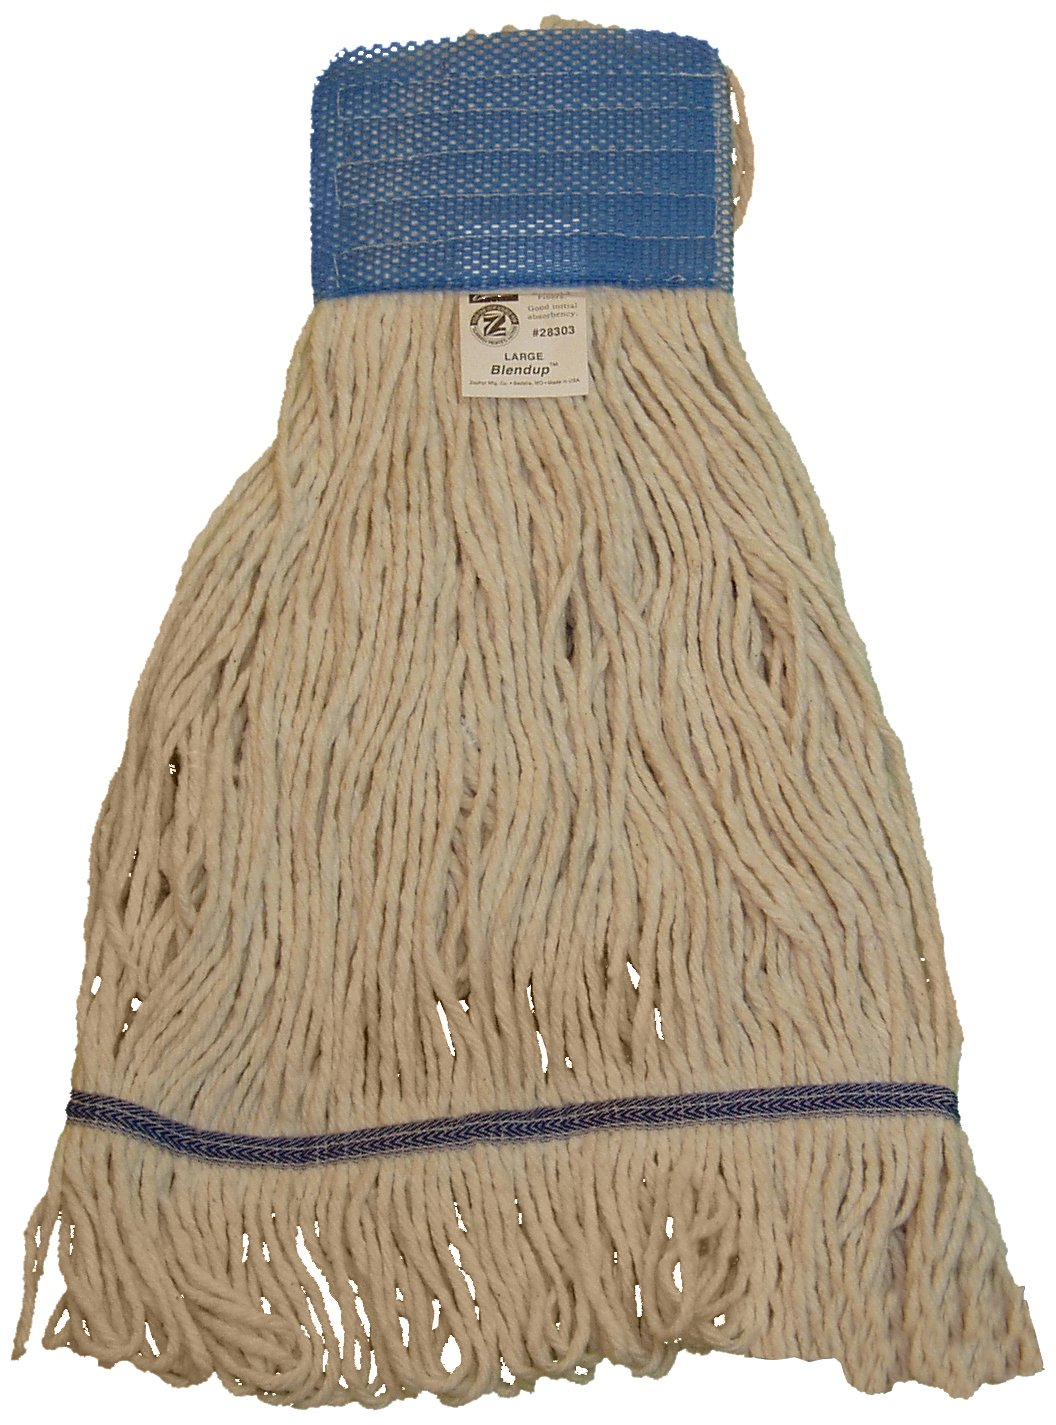 Zephyr 28304 Blendup 4-Ply Yarn Natural and Synthetic Fiber Blended X-large Loop Mop Head (Pack of 12) by Zephyr